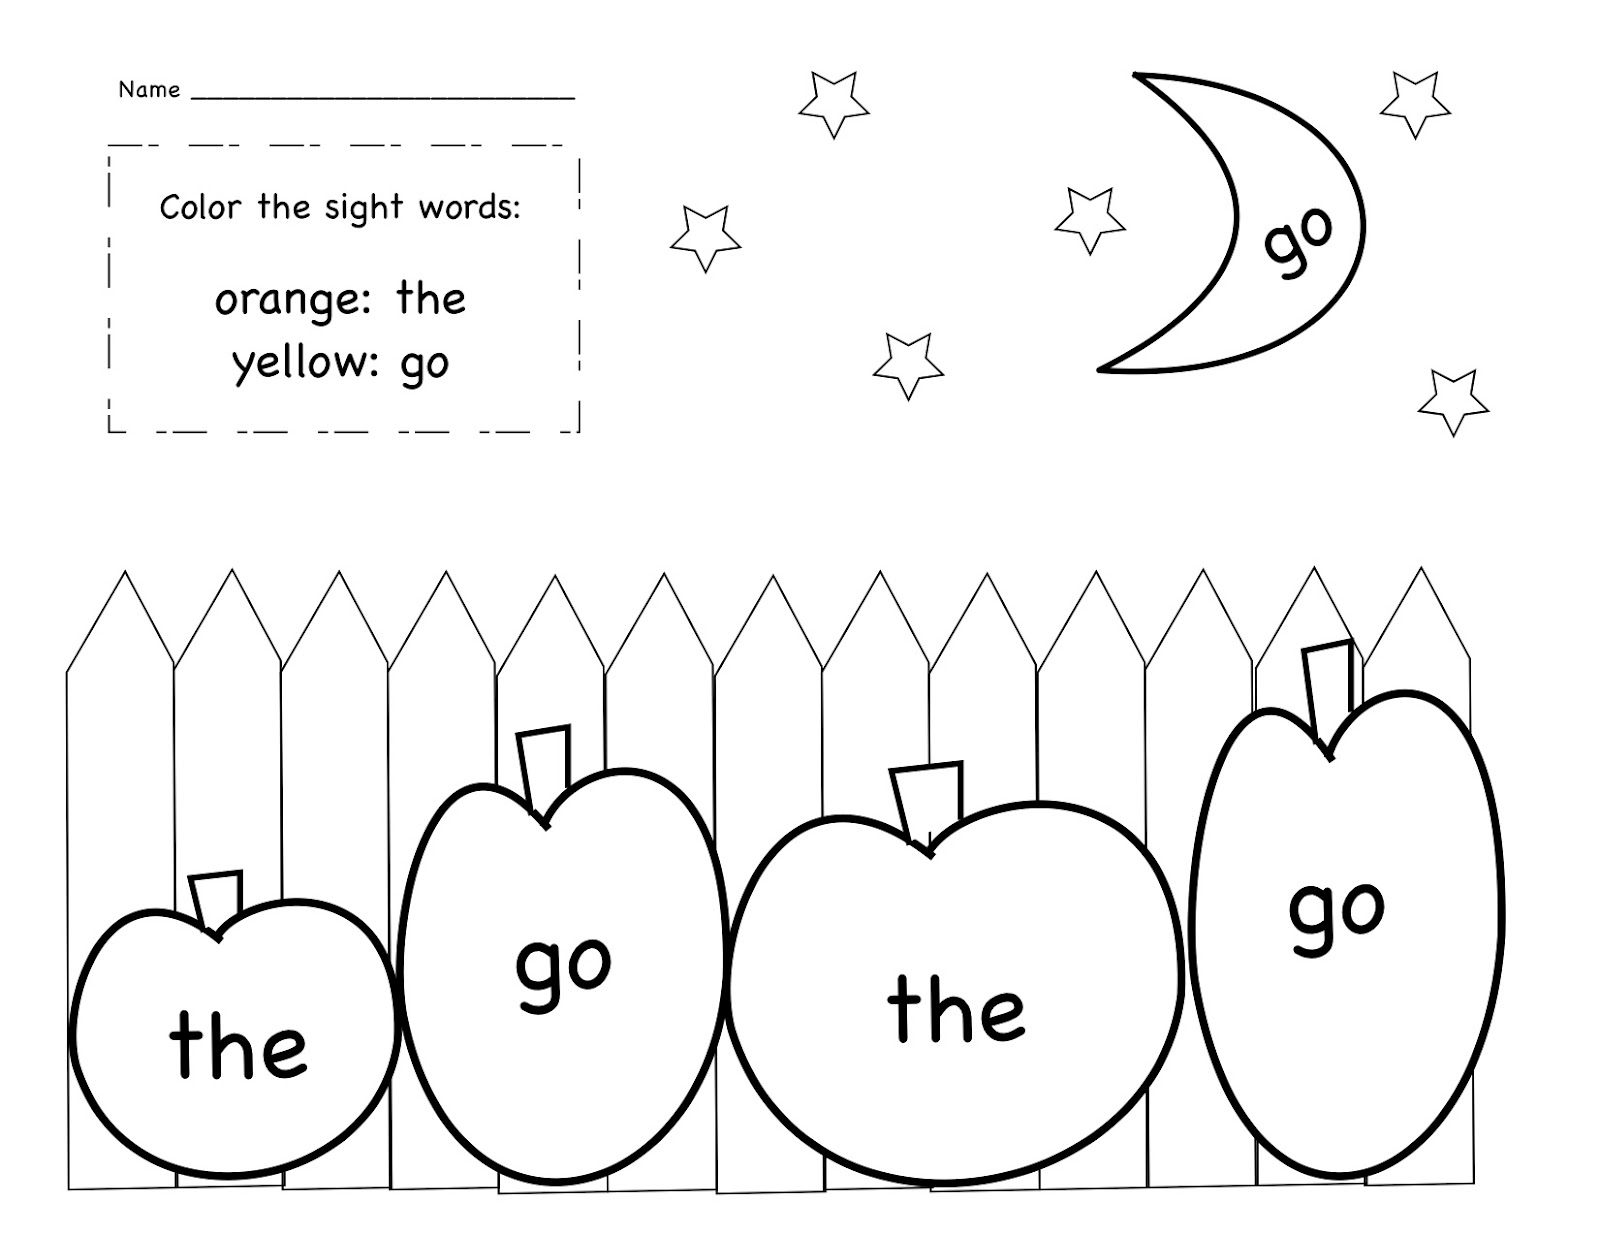 coloring words pages - photo#13